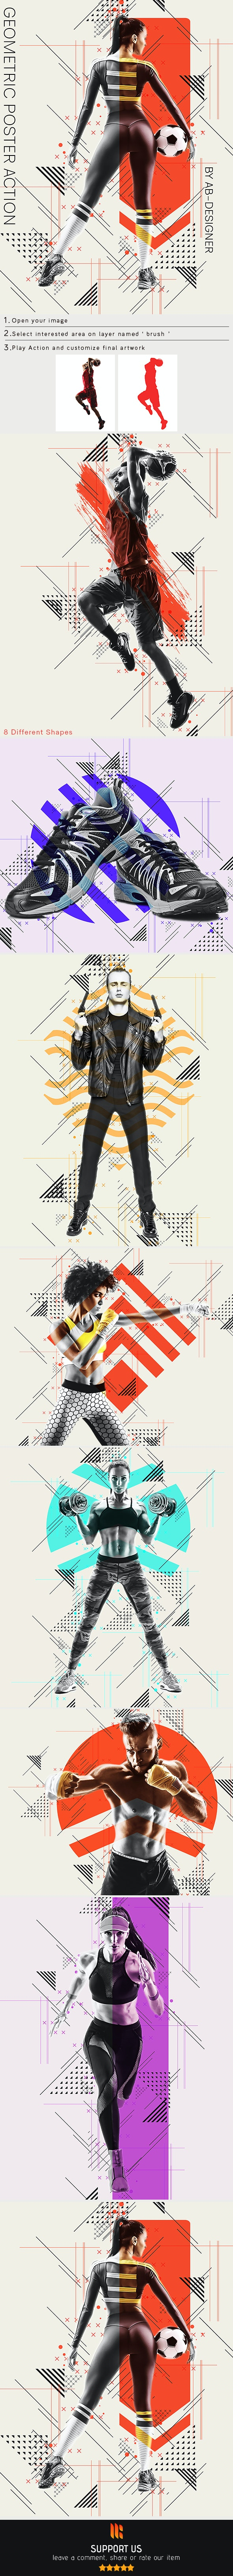 Geometric Poster Photoshop Action - Photo Effects Actions